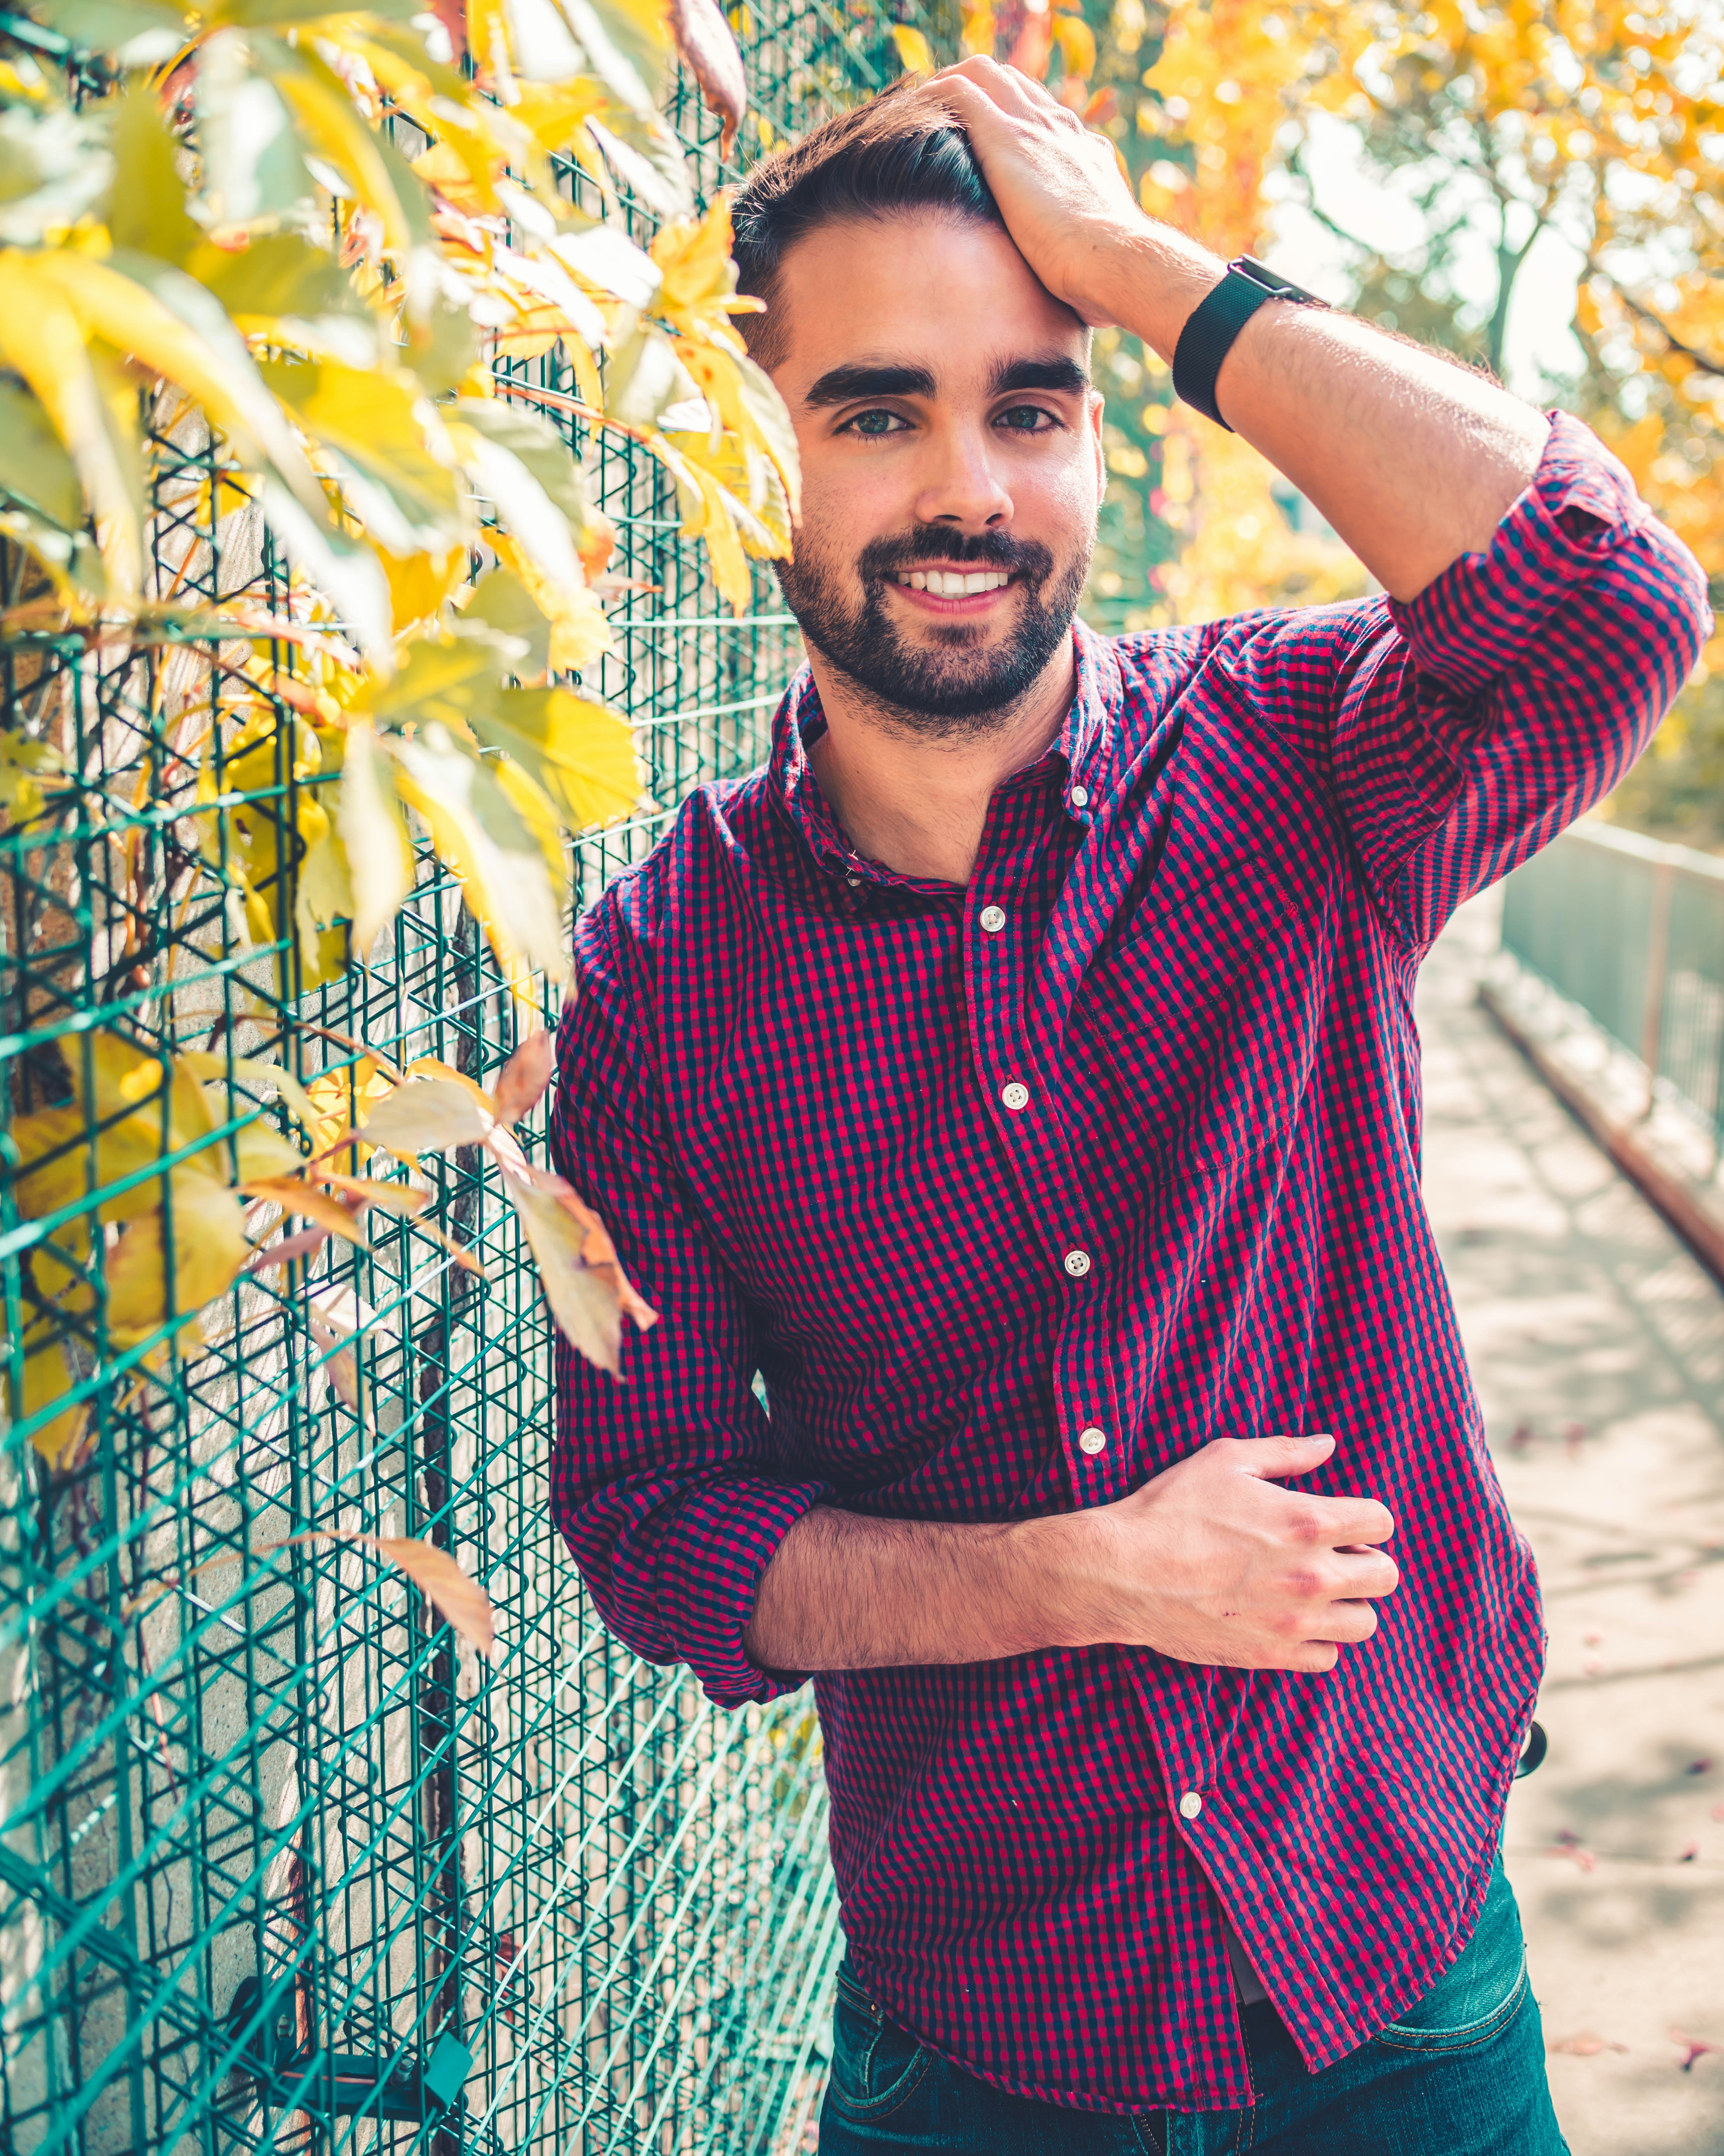 smiling man standing beside green screen fence with green plants durng daytime